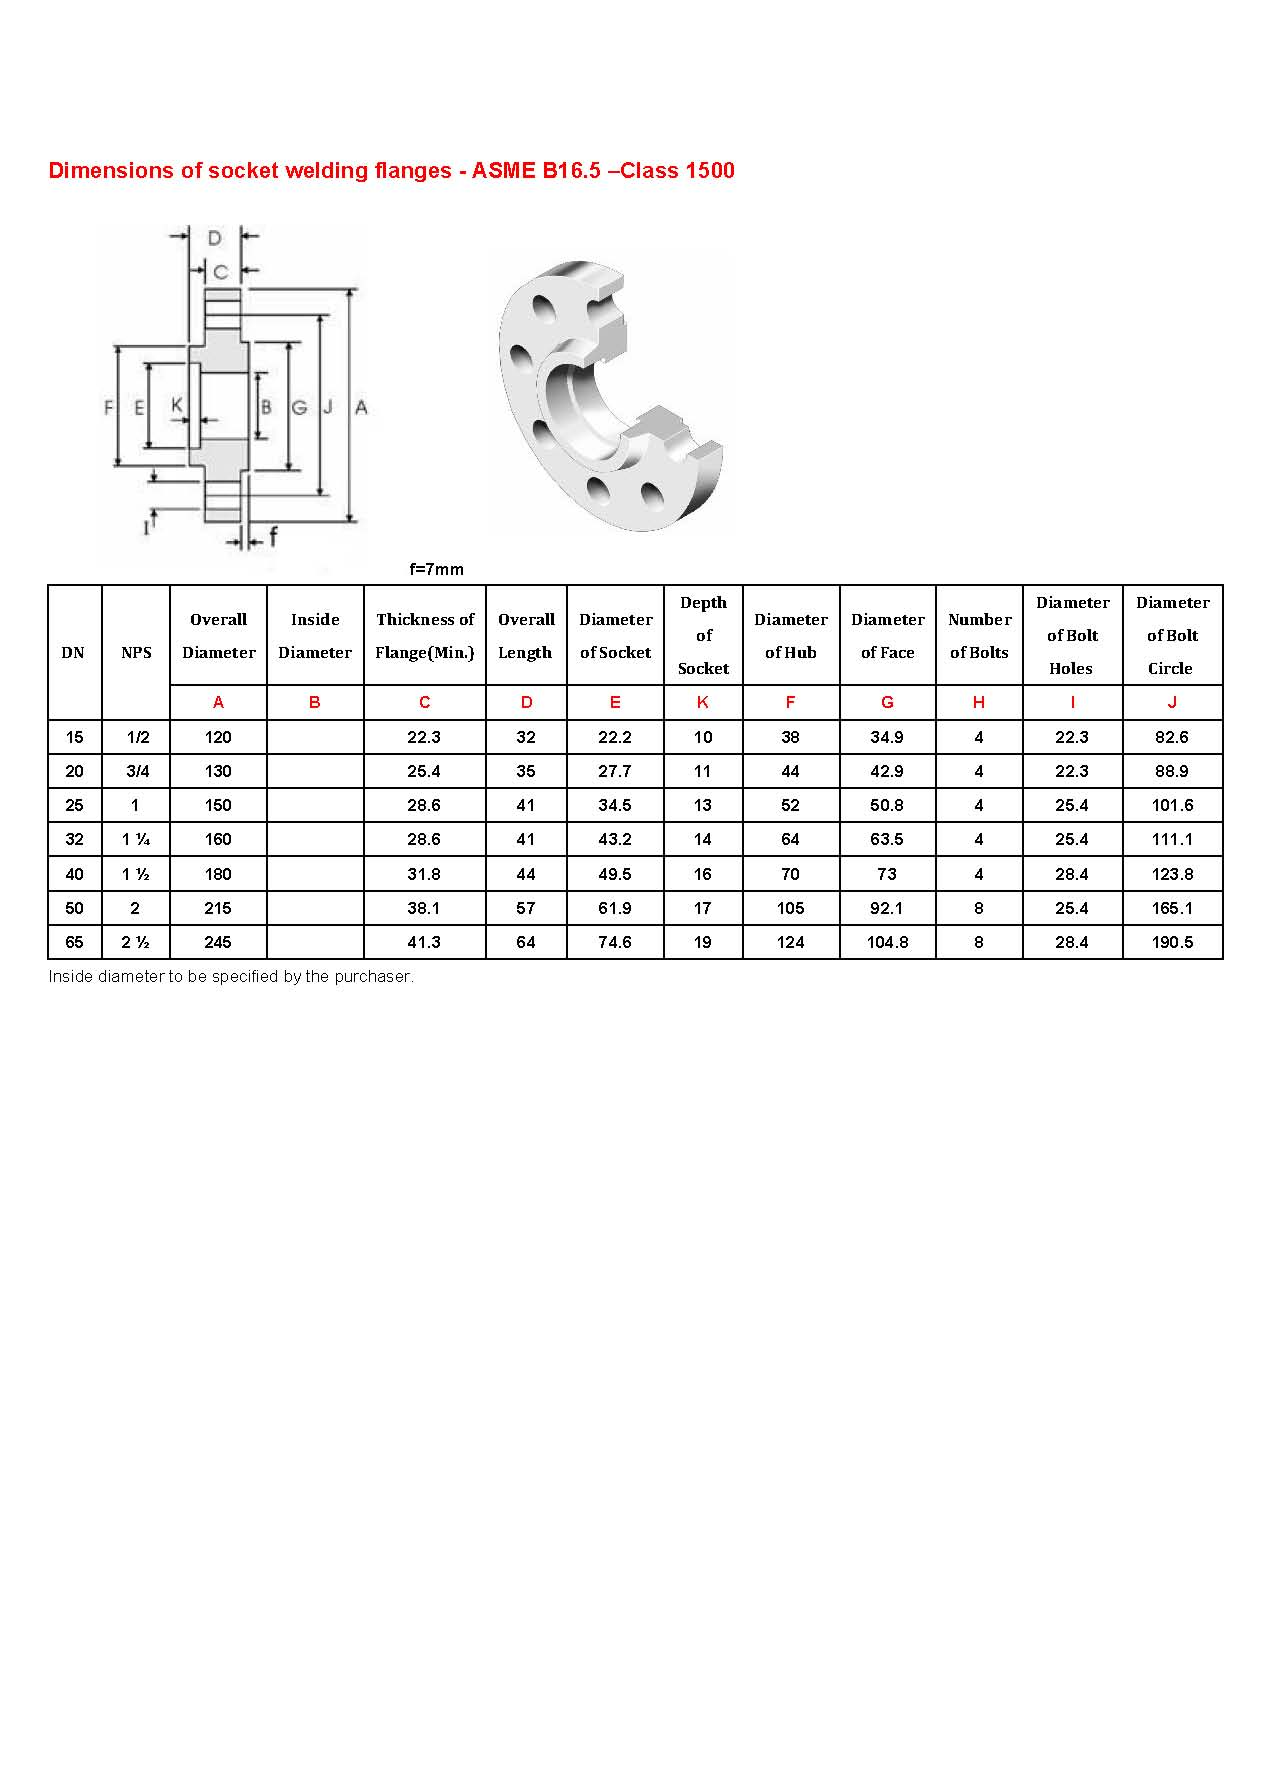 Dimensions of socket welding flanges - ASME B16.5_4